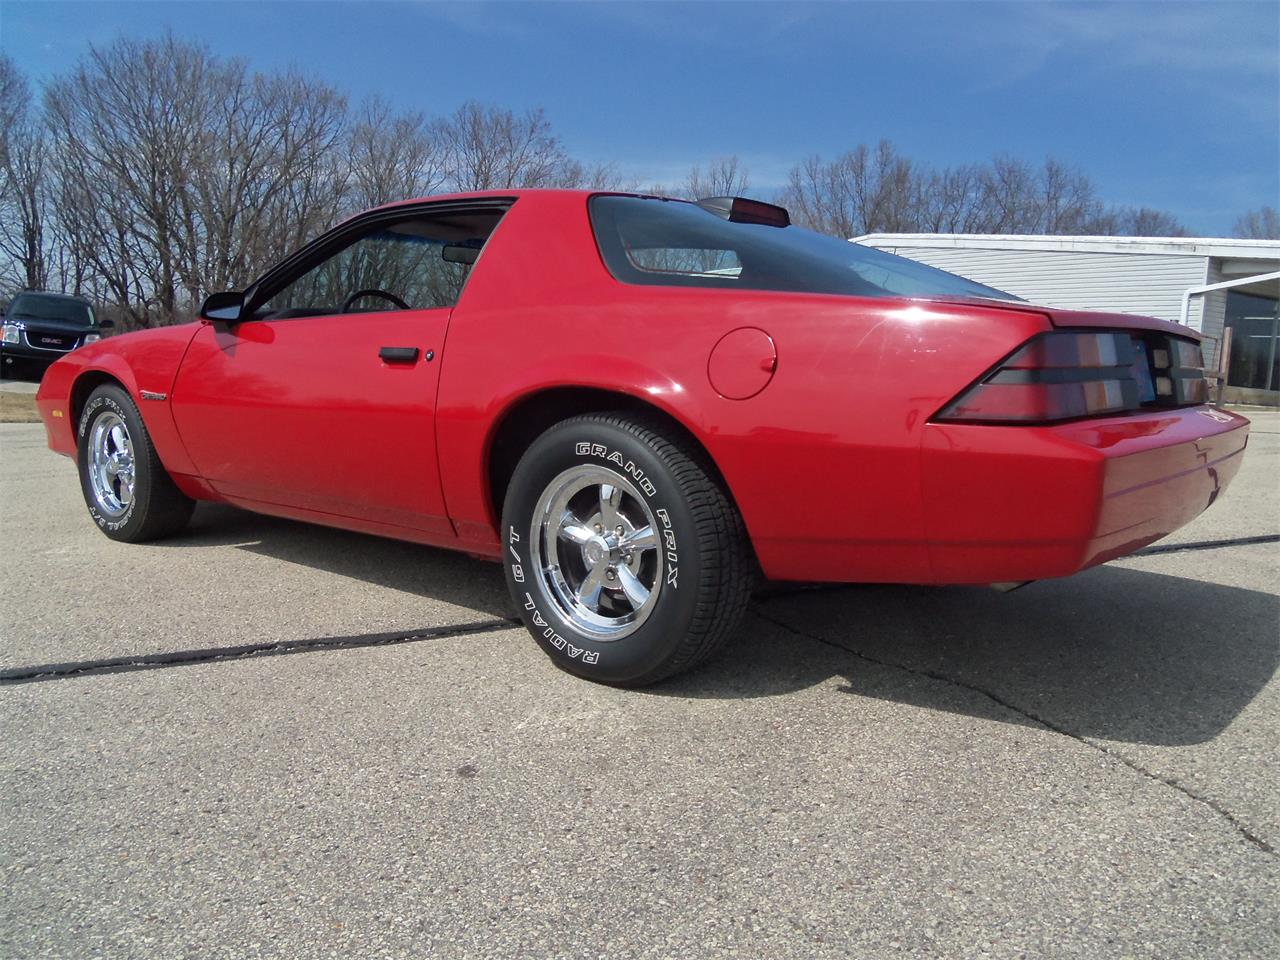 Large Picture of '87 Chevrolet Camaro located in Wisconsin - $7,495.00 - N4OS